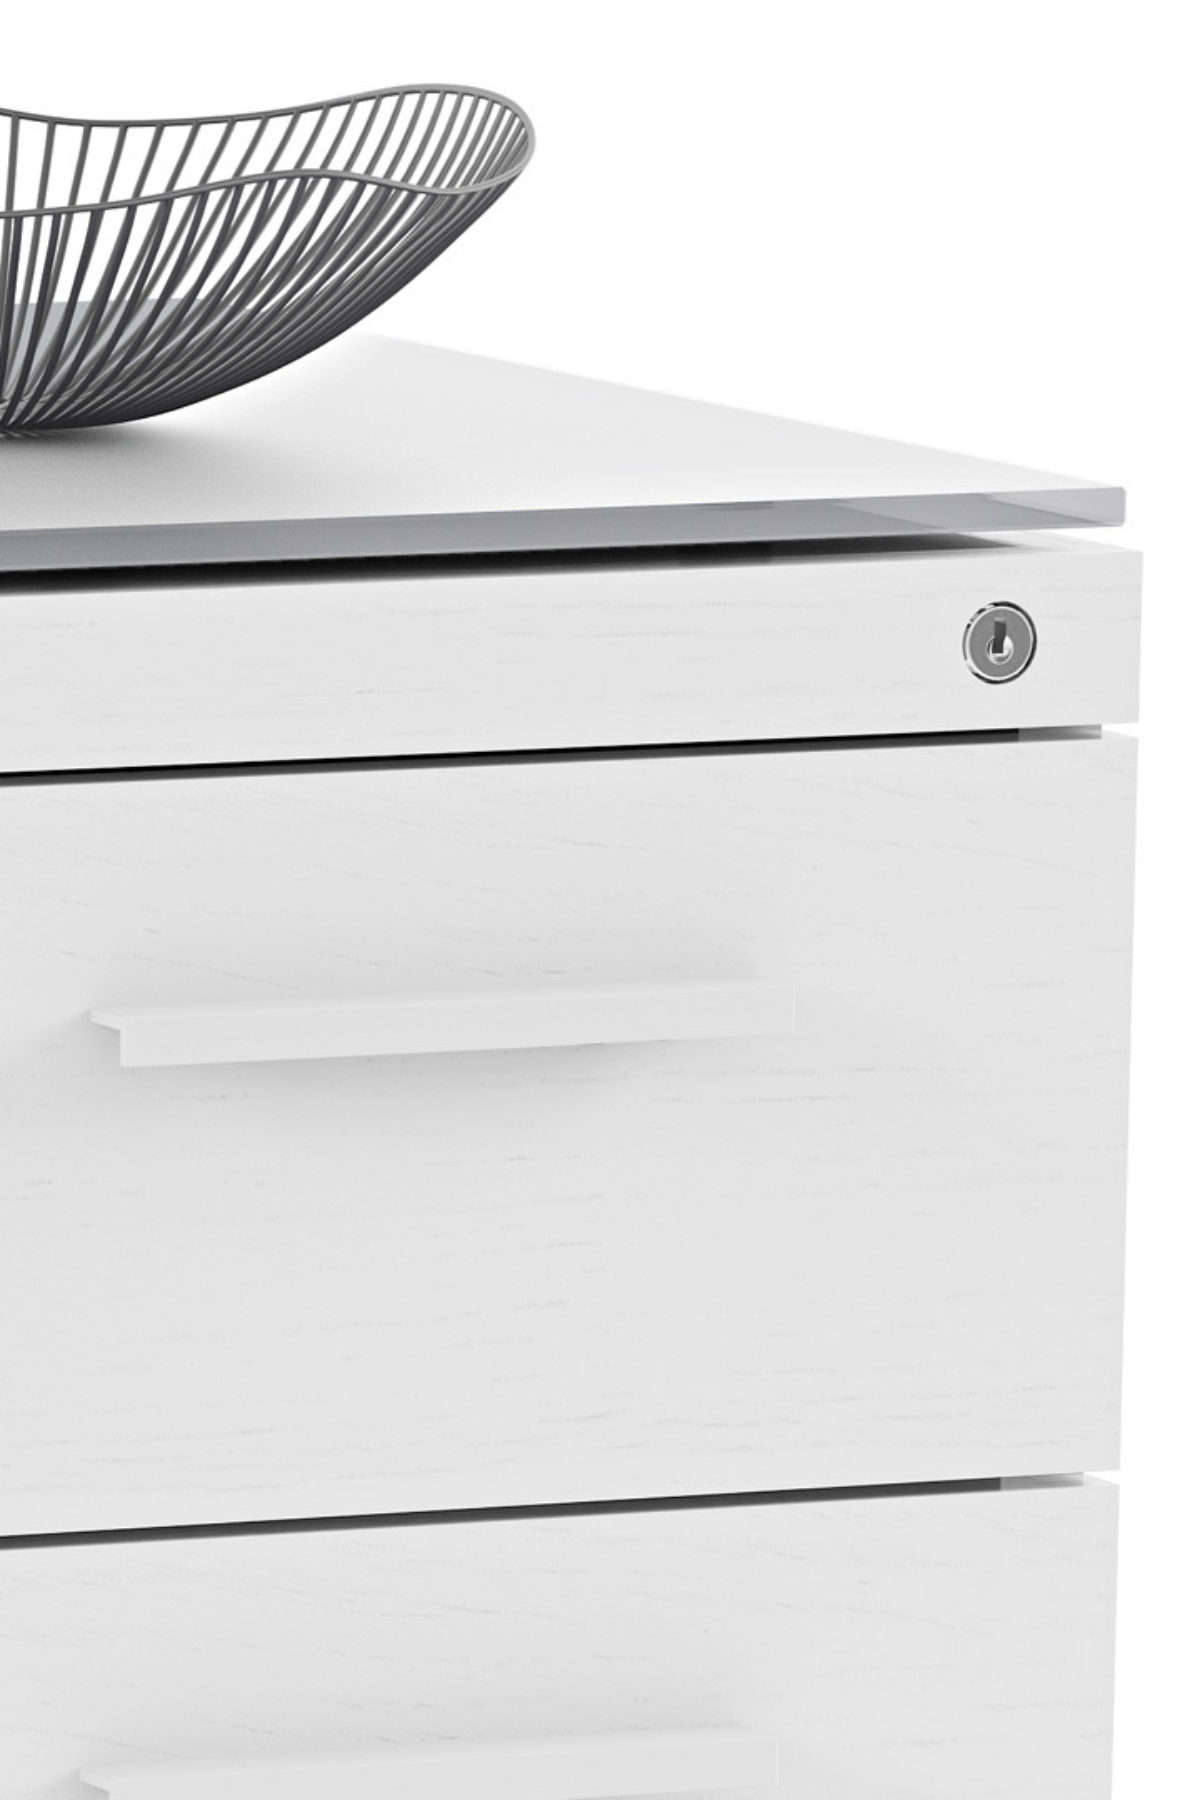 The Centro Multifunction Storage Cabinet by BDI in white with locking drawer